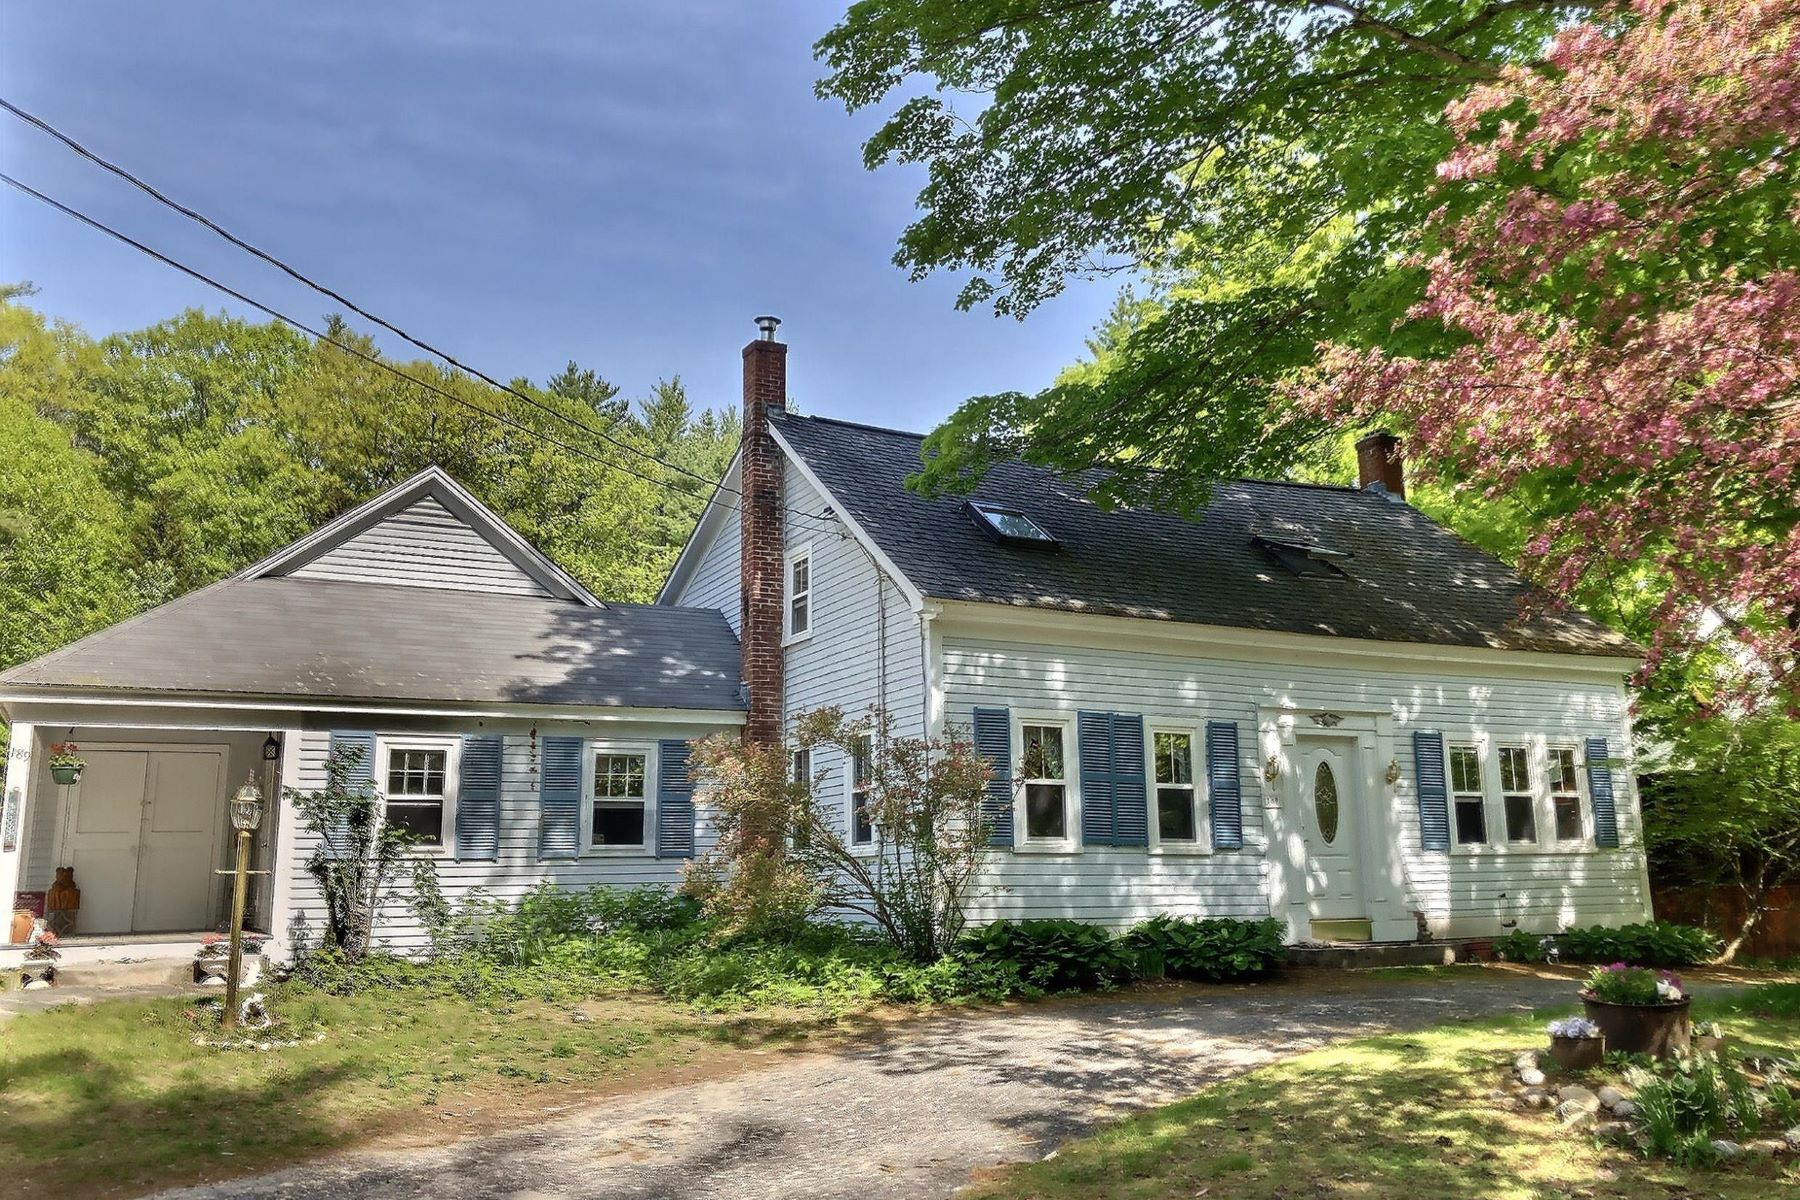 Single Family Home for Sale at Country Cape with Antique Barn 189 South Rd Newbury, New Hampshire 03255 United States